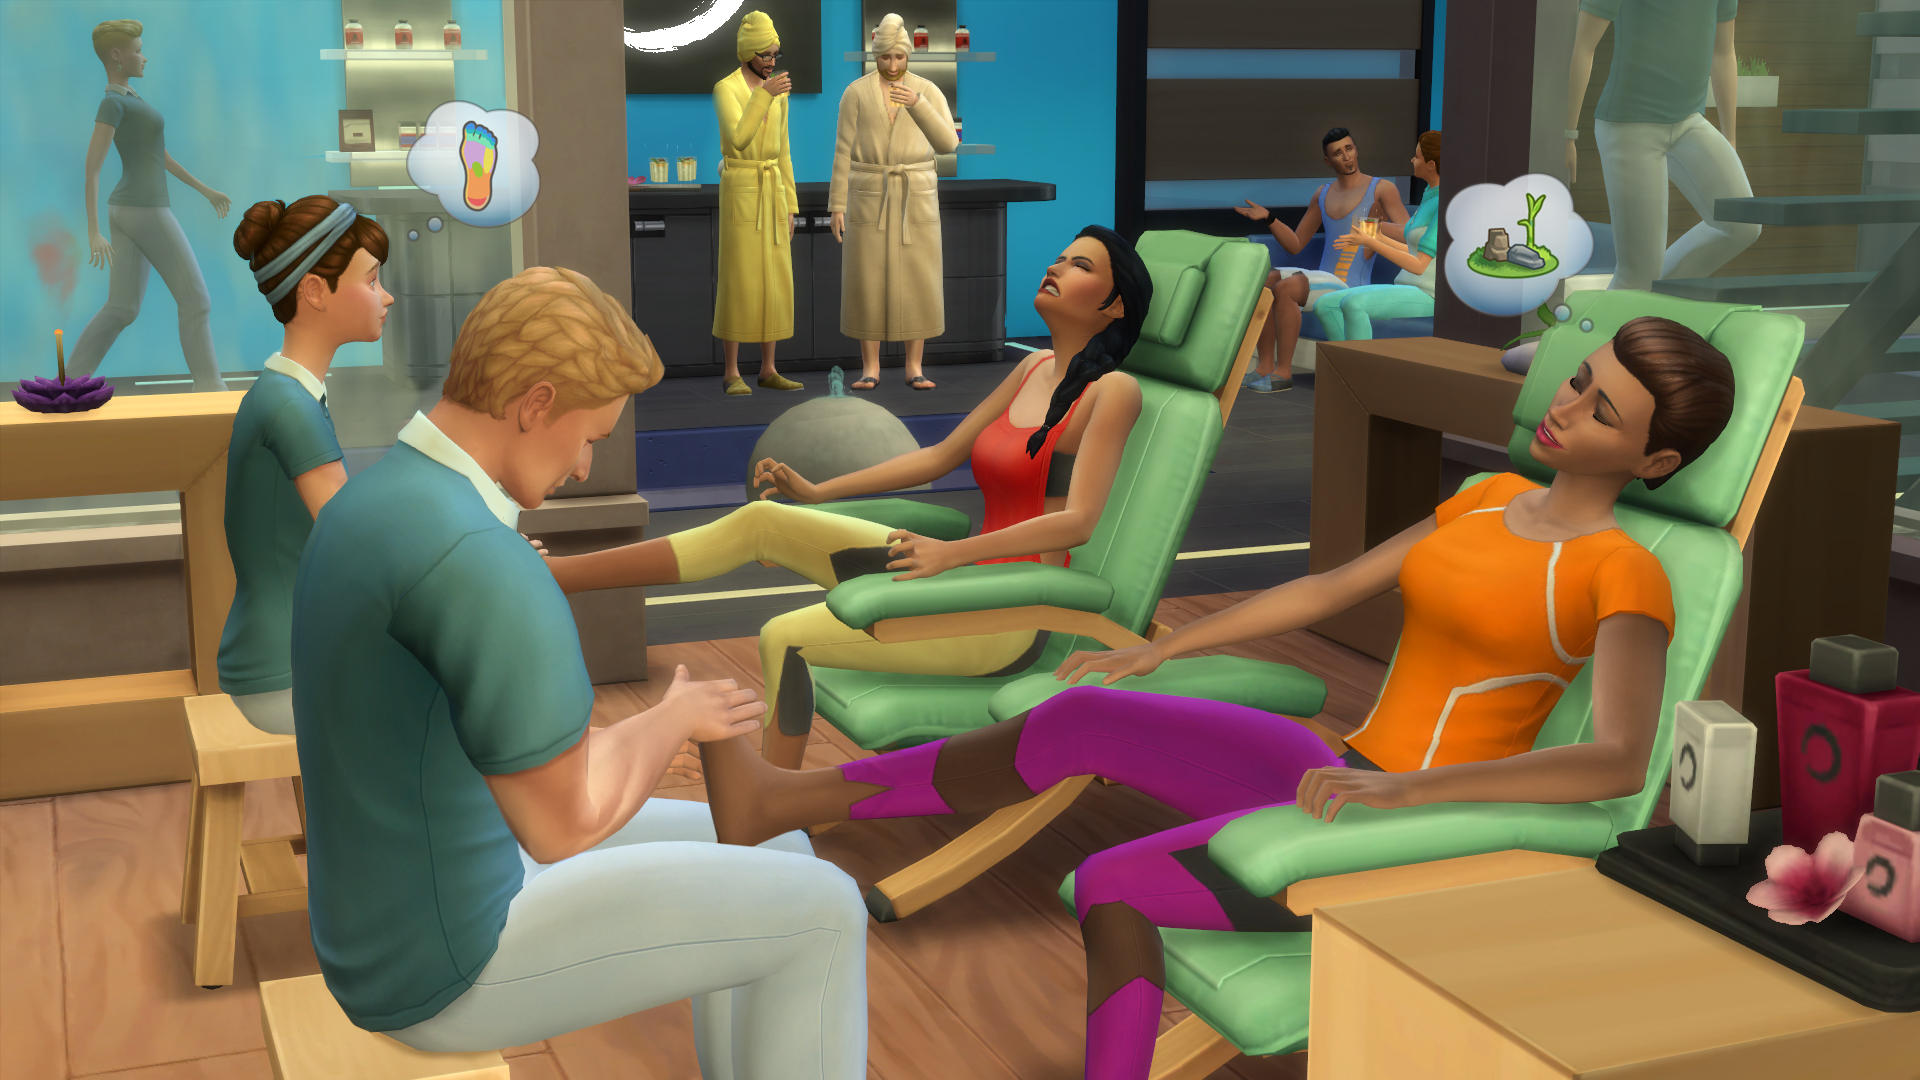 The sims 3 online hookup mod